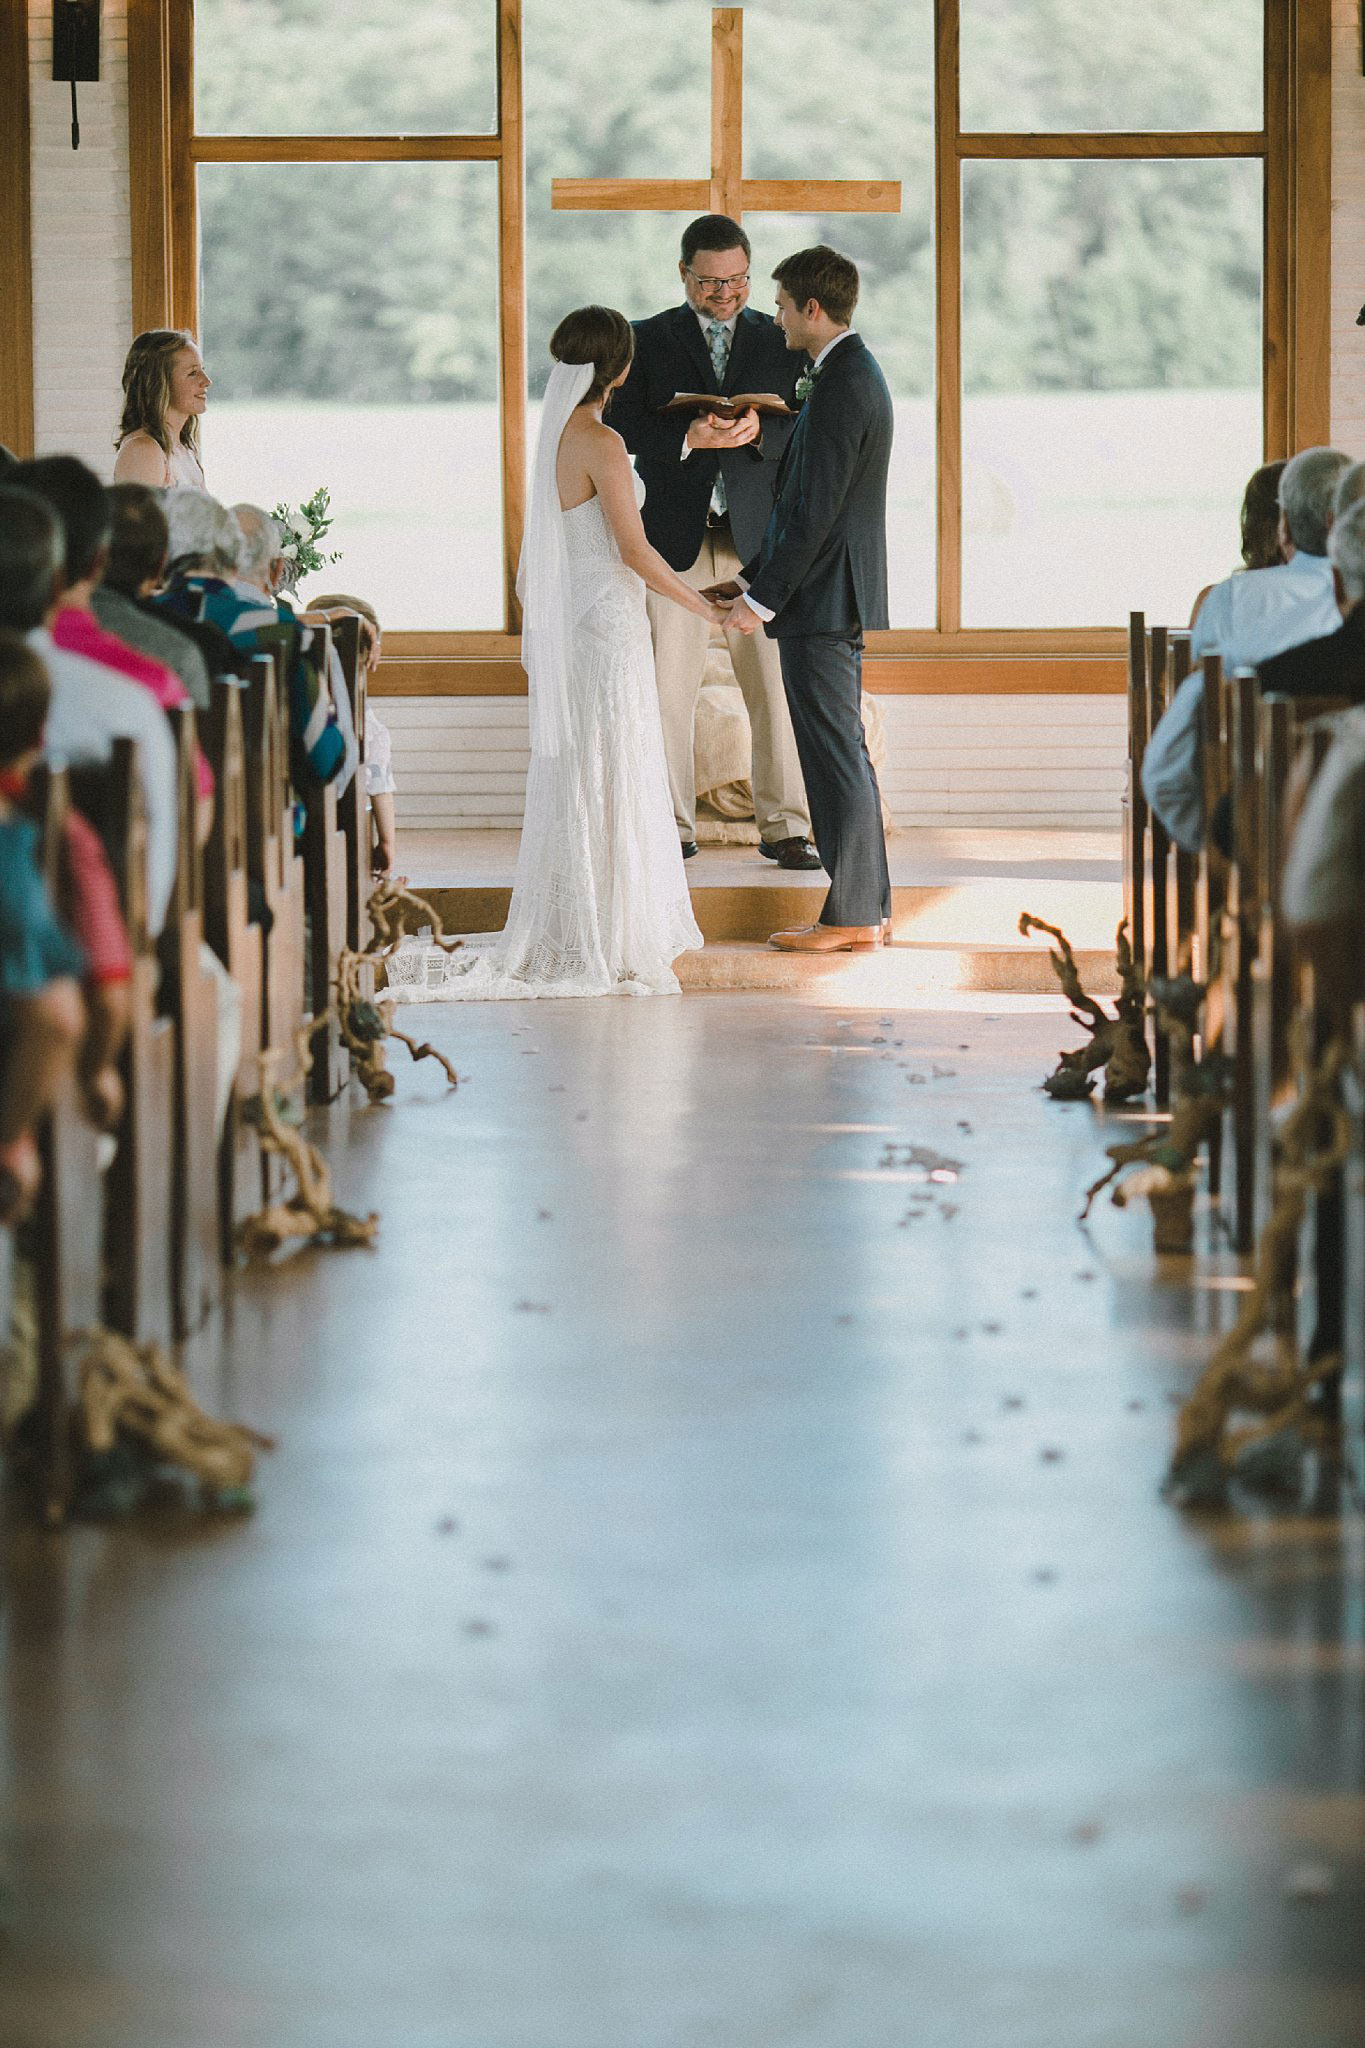 Brooks at Weatherford wedding ceremony with driftwood lining the wedding aisle